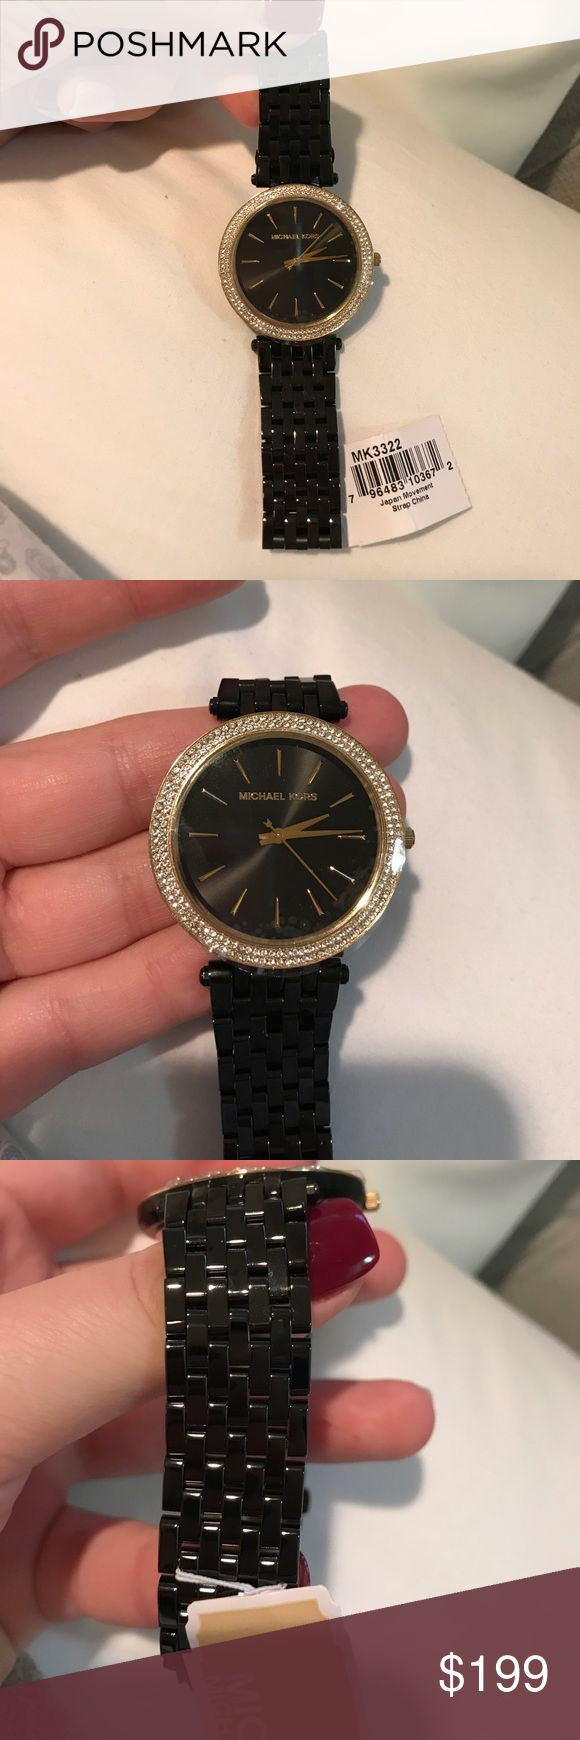 NWT Michael Kors Black crystal watch Brand new, never used or worn except to take these pics. Plastic is still on the face and chain closure. I got rid of box, extra links and book. This was purchased at an actual Michael Kors store location approx 2 years ago. Price FIRM unless bundled Michael Kors Accessories Watches